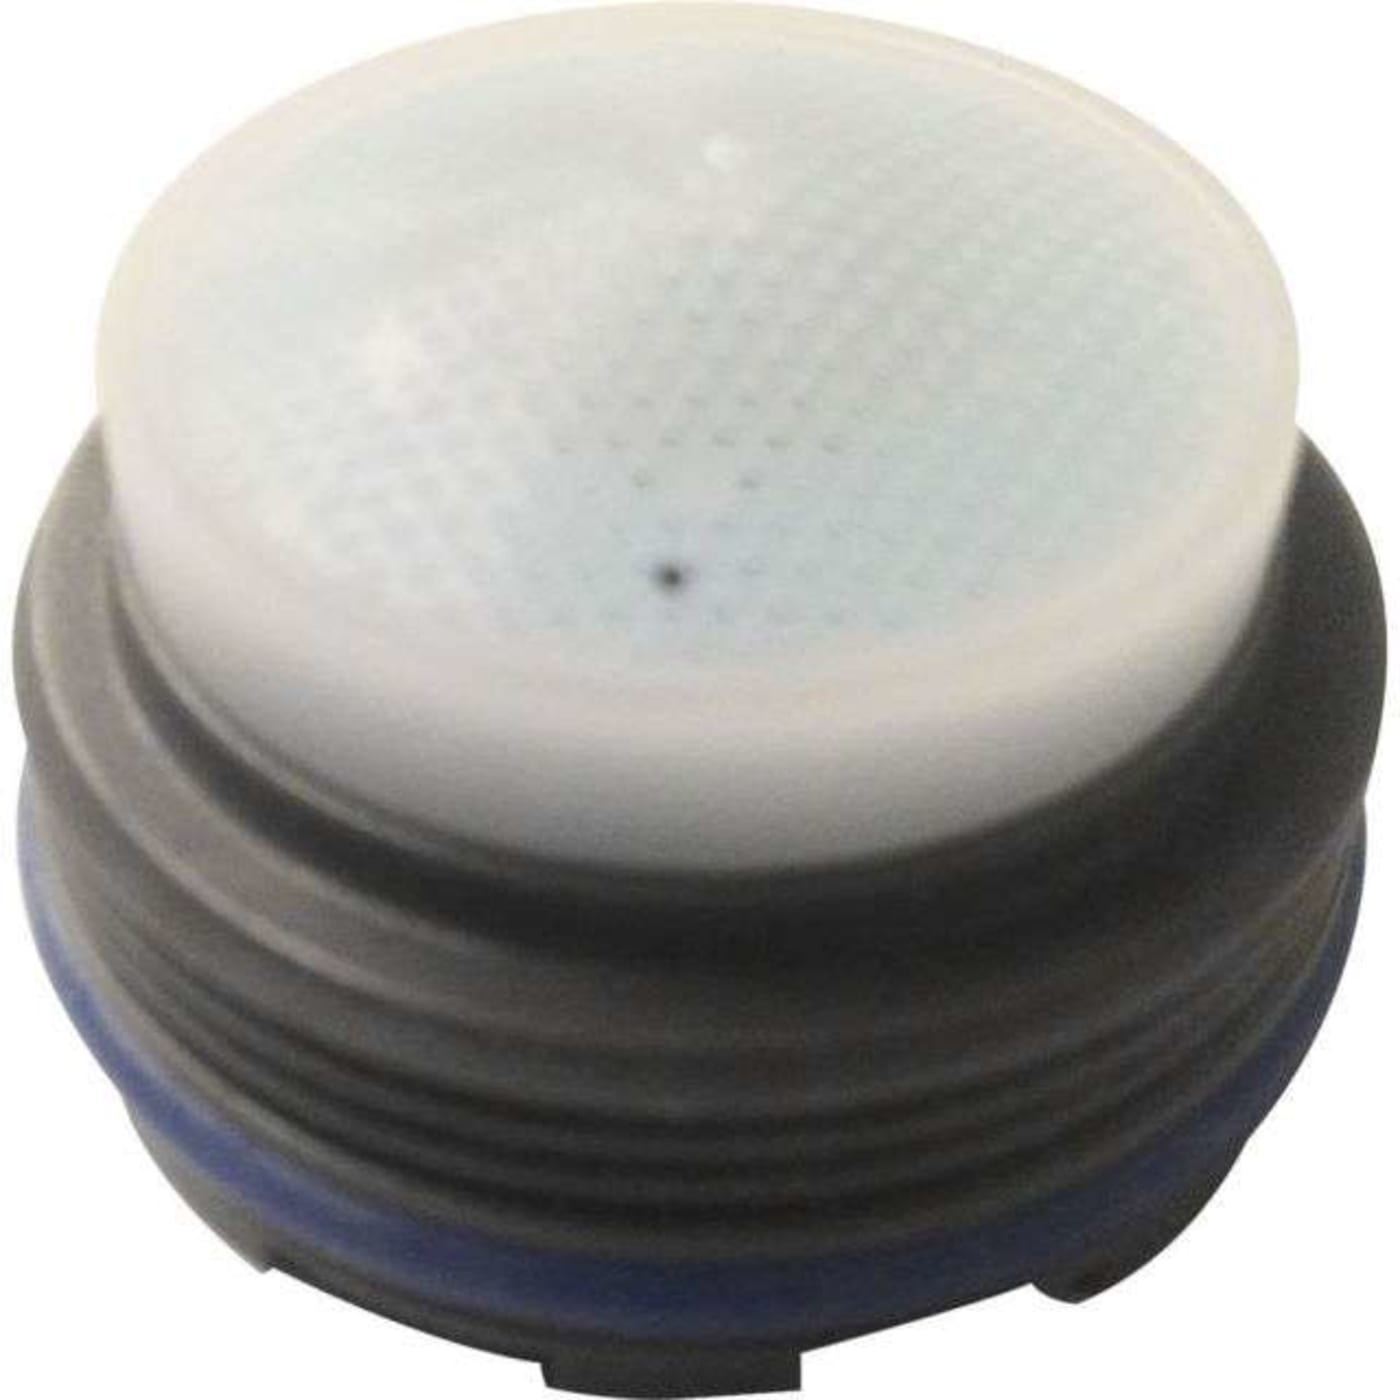 Delta Windemere Kitchen Faucet Aerator RP70191 - Goedekers.com